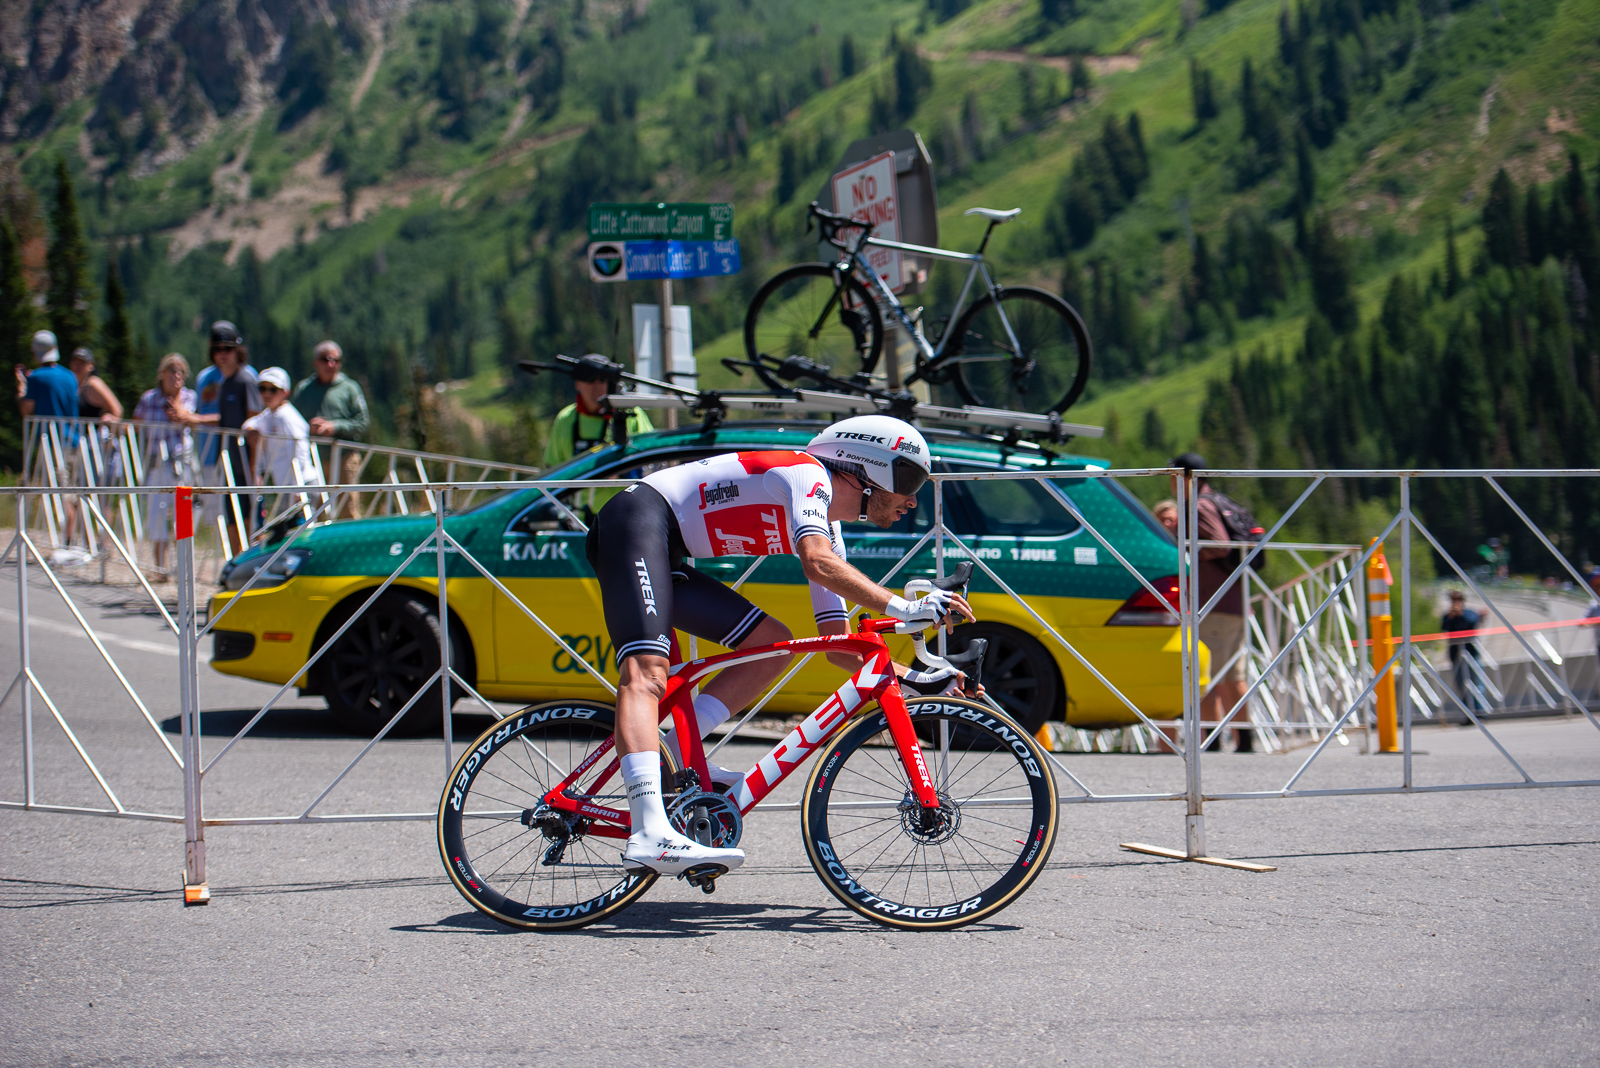 Nicholas DeBeaumarché (Trek-Segafredo) rounds the hairpin at the bottom of the Prologue course. 2019 Tour of Utah. Photo by Steven L. Sheffield